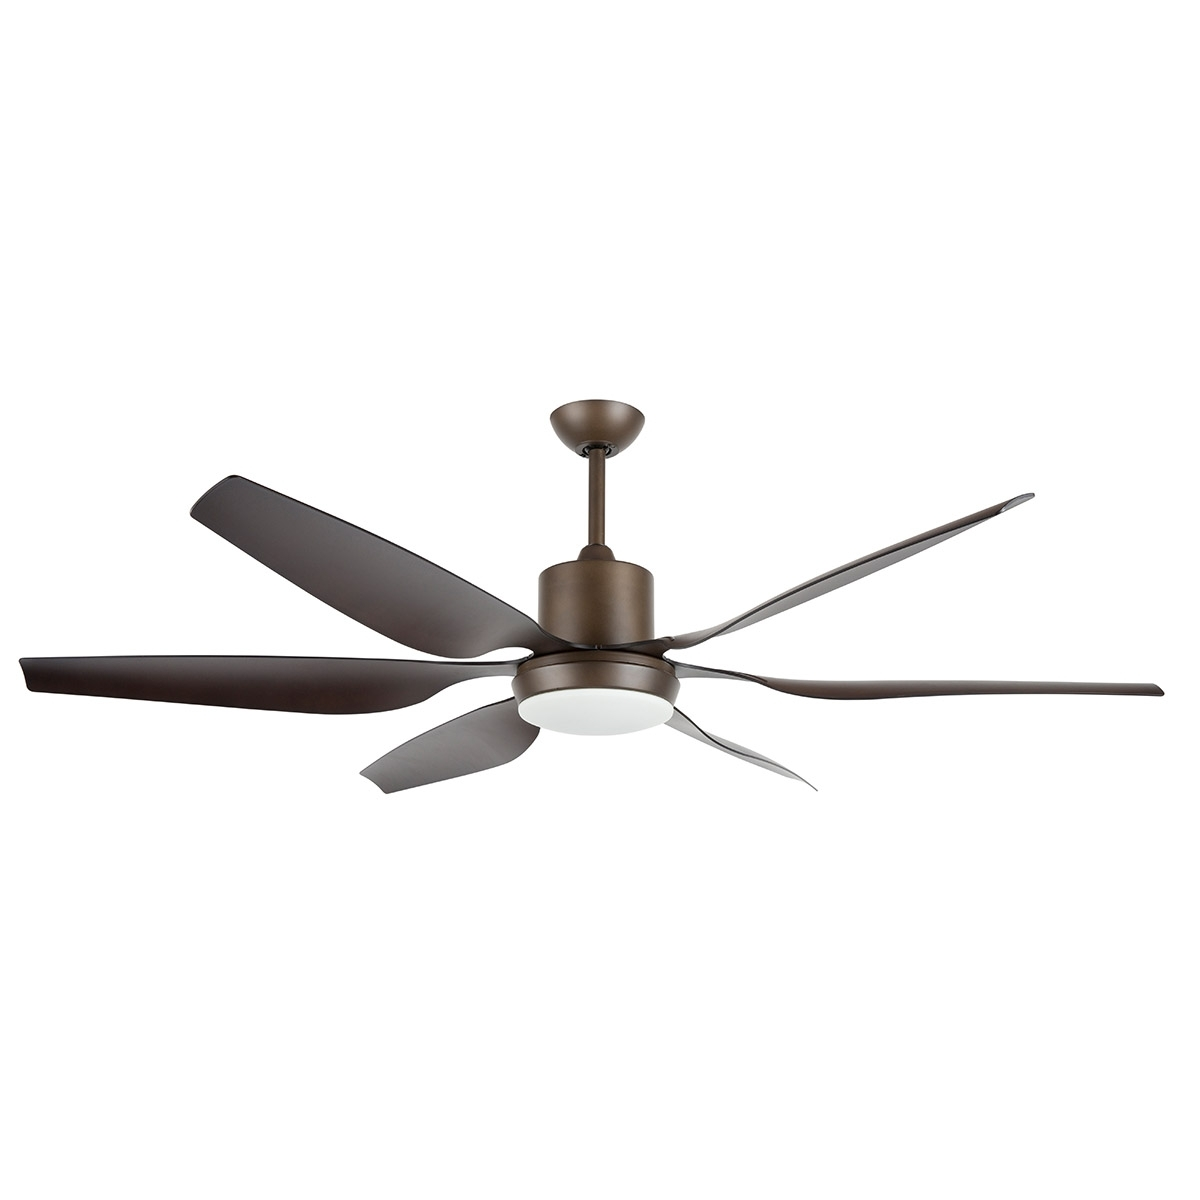 Fashionable 20 Inch Outdoor Ceiling Fans With Light With Regard To Aviator 66″ Dc Ceiling Fan – Brilliant Lighting (Gallery 16 of 20)